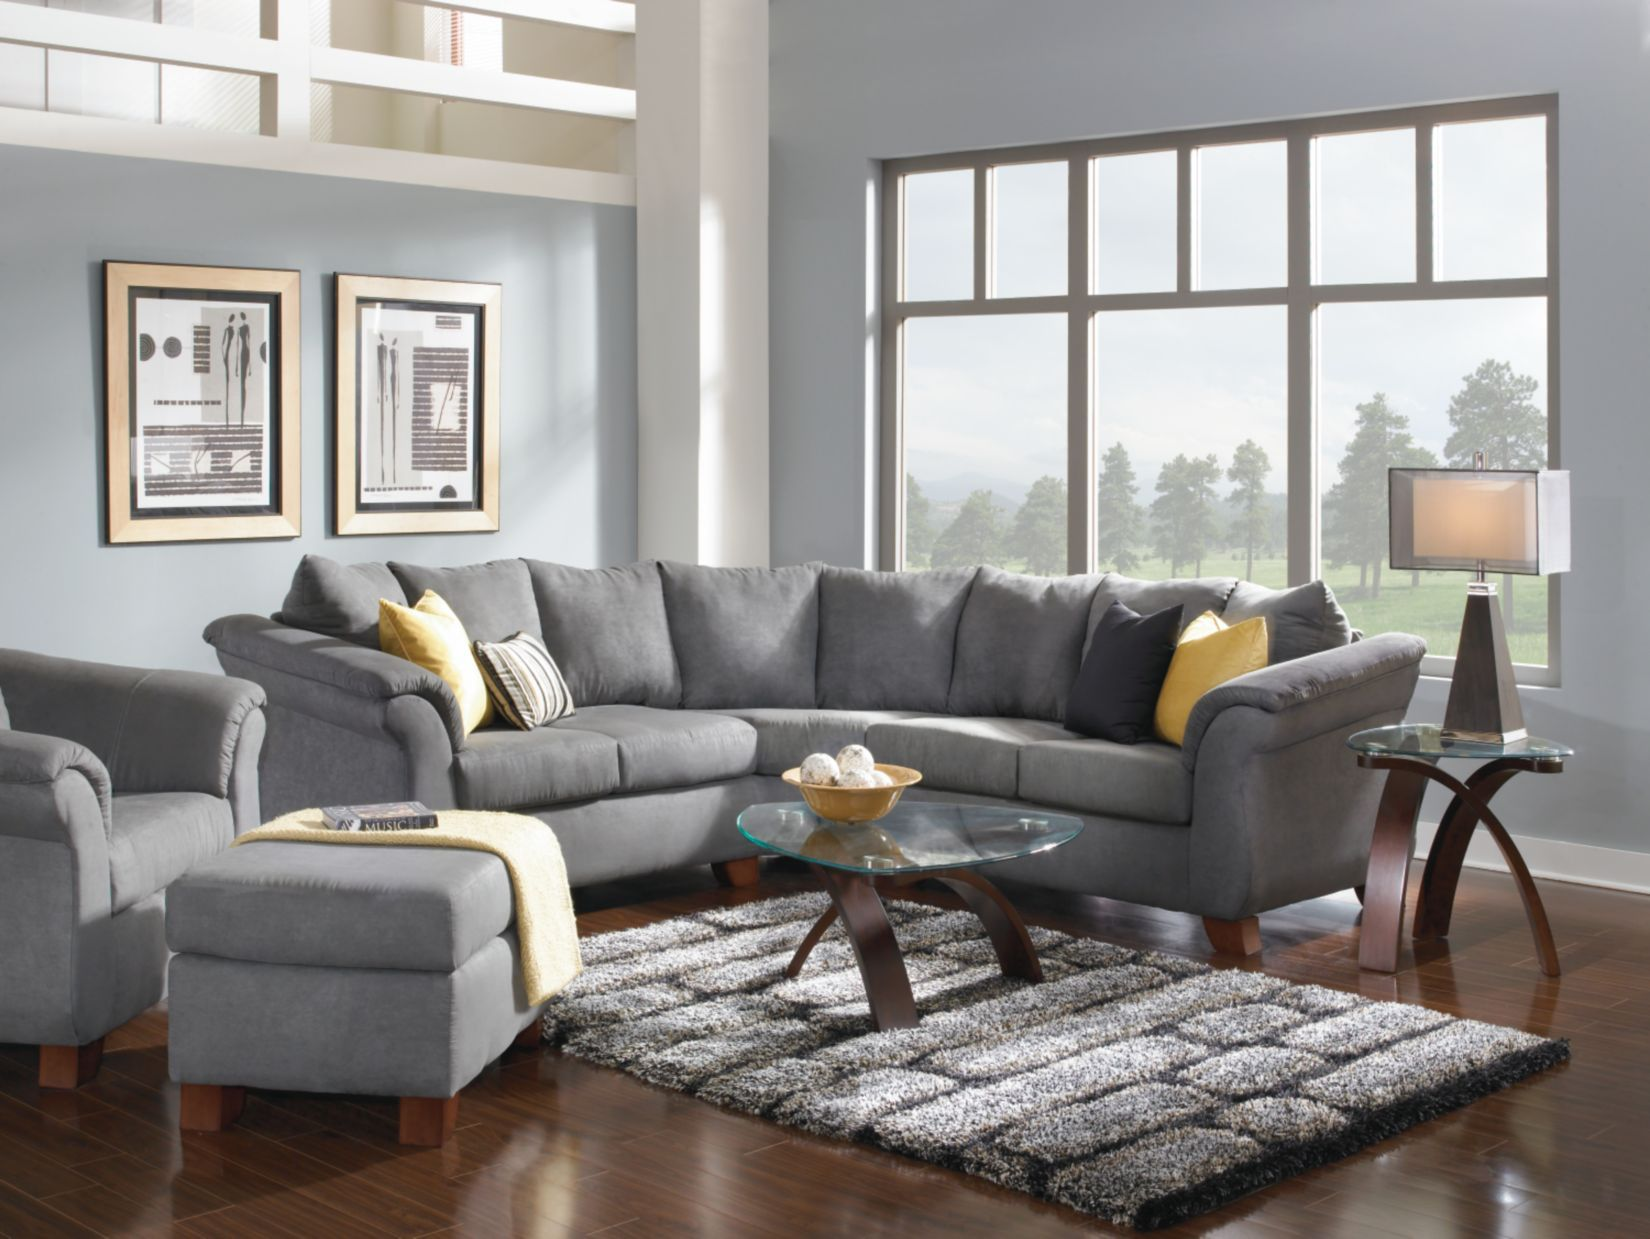 Copyright © 2021 investorplace media, llc. Adrian Graphite sectional couch   Value city furniture ...